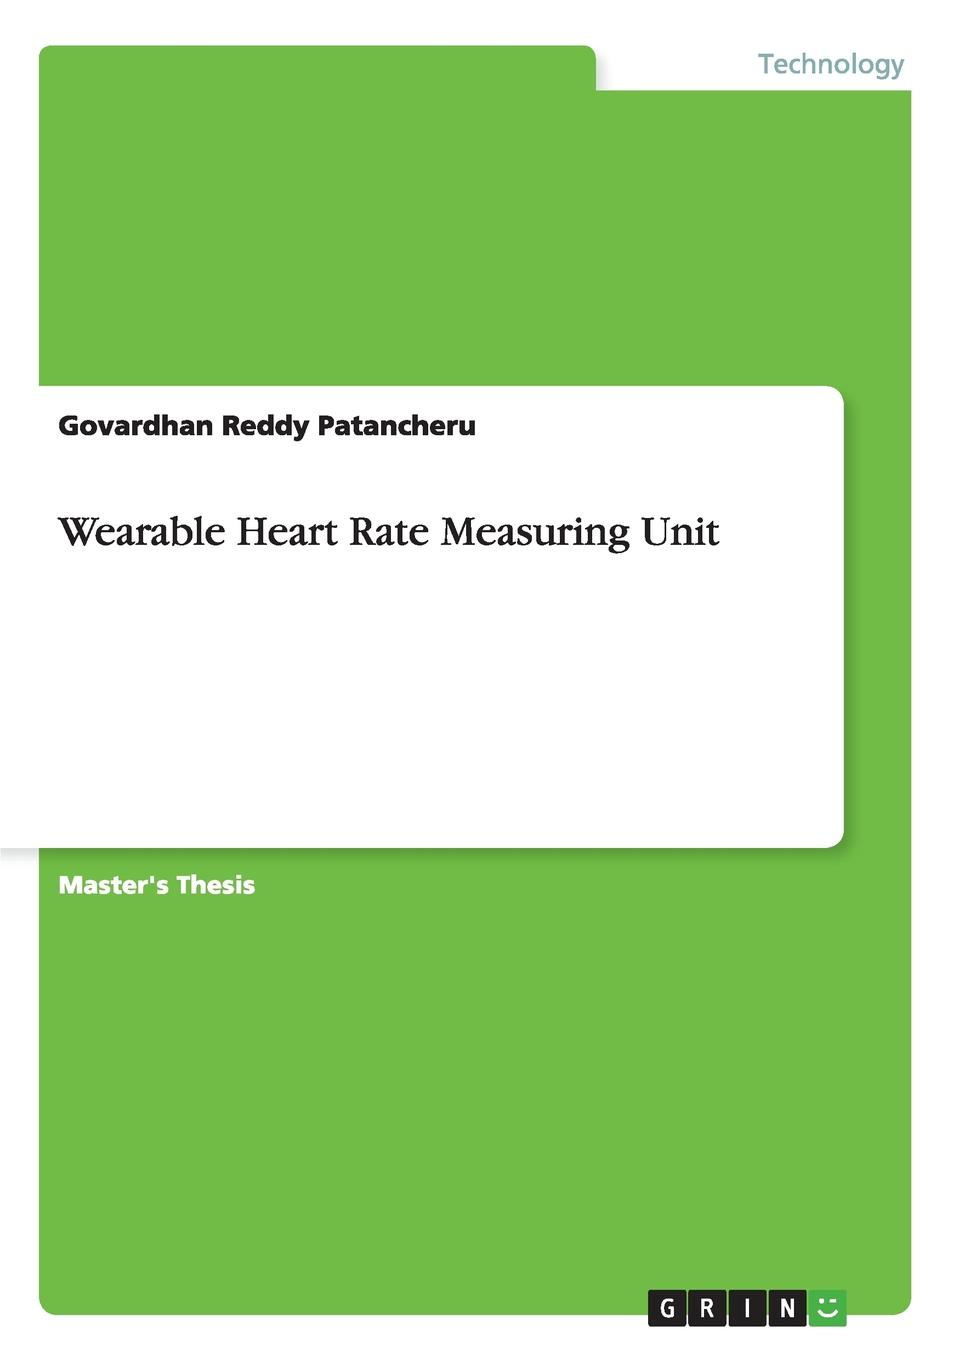 Govardhan Reddy Patancheru Wearable Heart Rate Measuring Unit fast arrival lb50t portable brix meter fruit sugar measuring instrument with measuring range 0 50